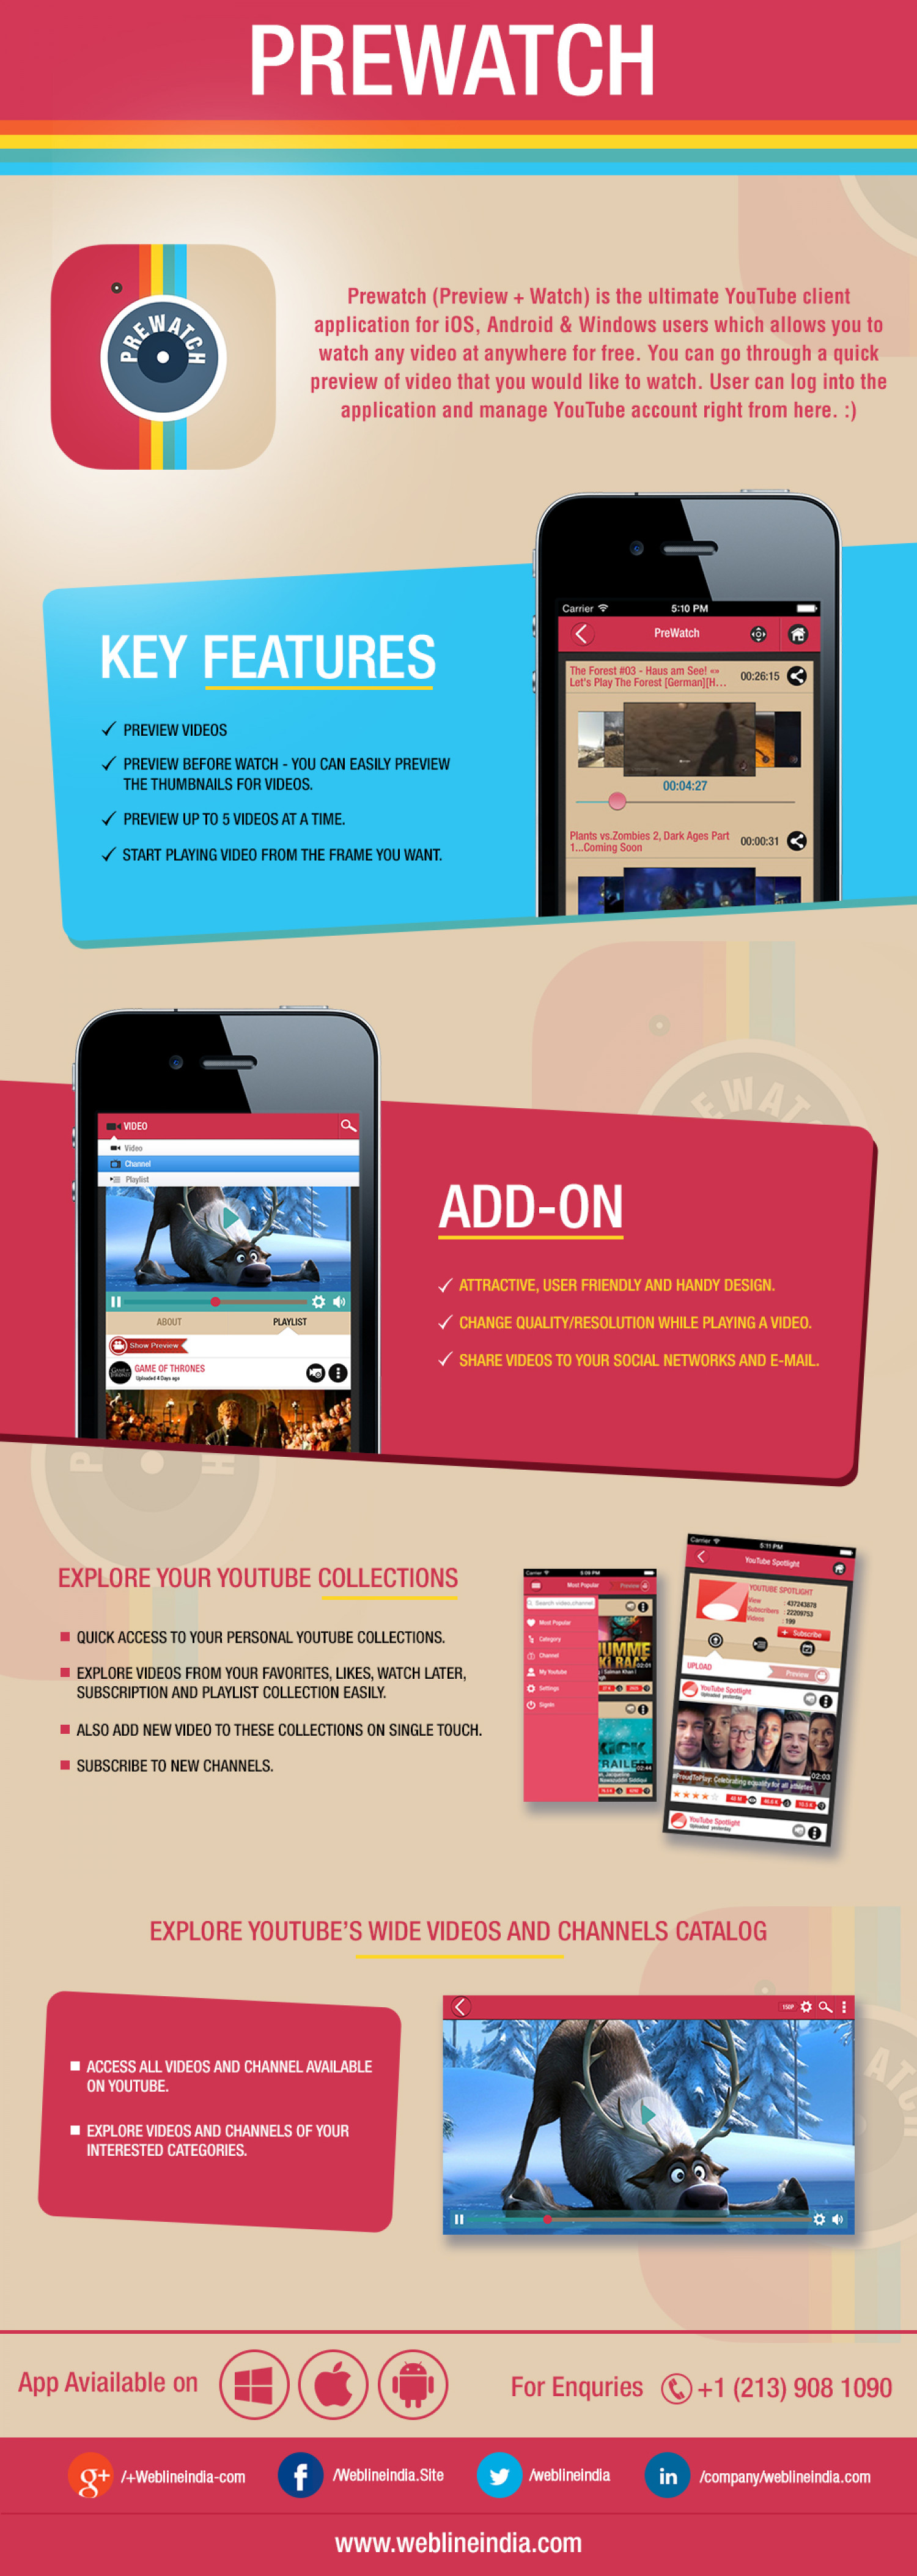 Prewatch App for iOS, Android and Windows Devices Infographic